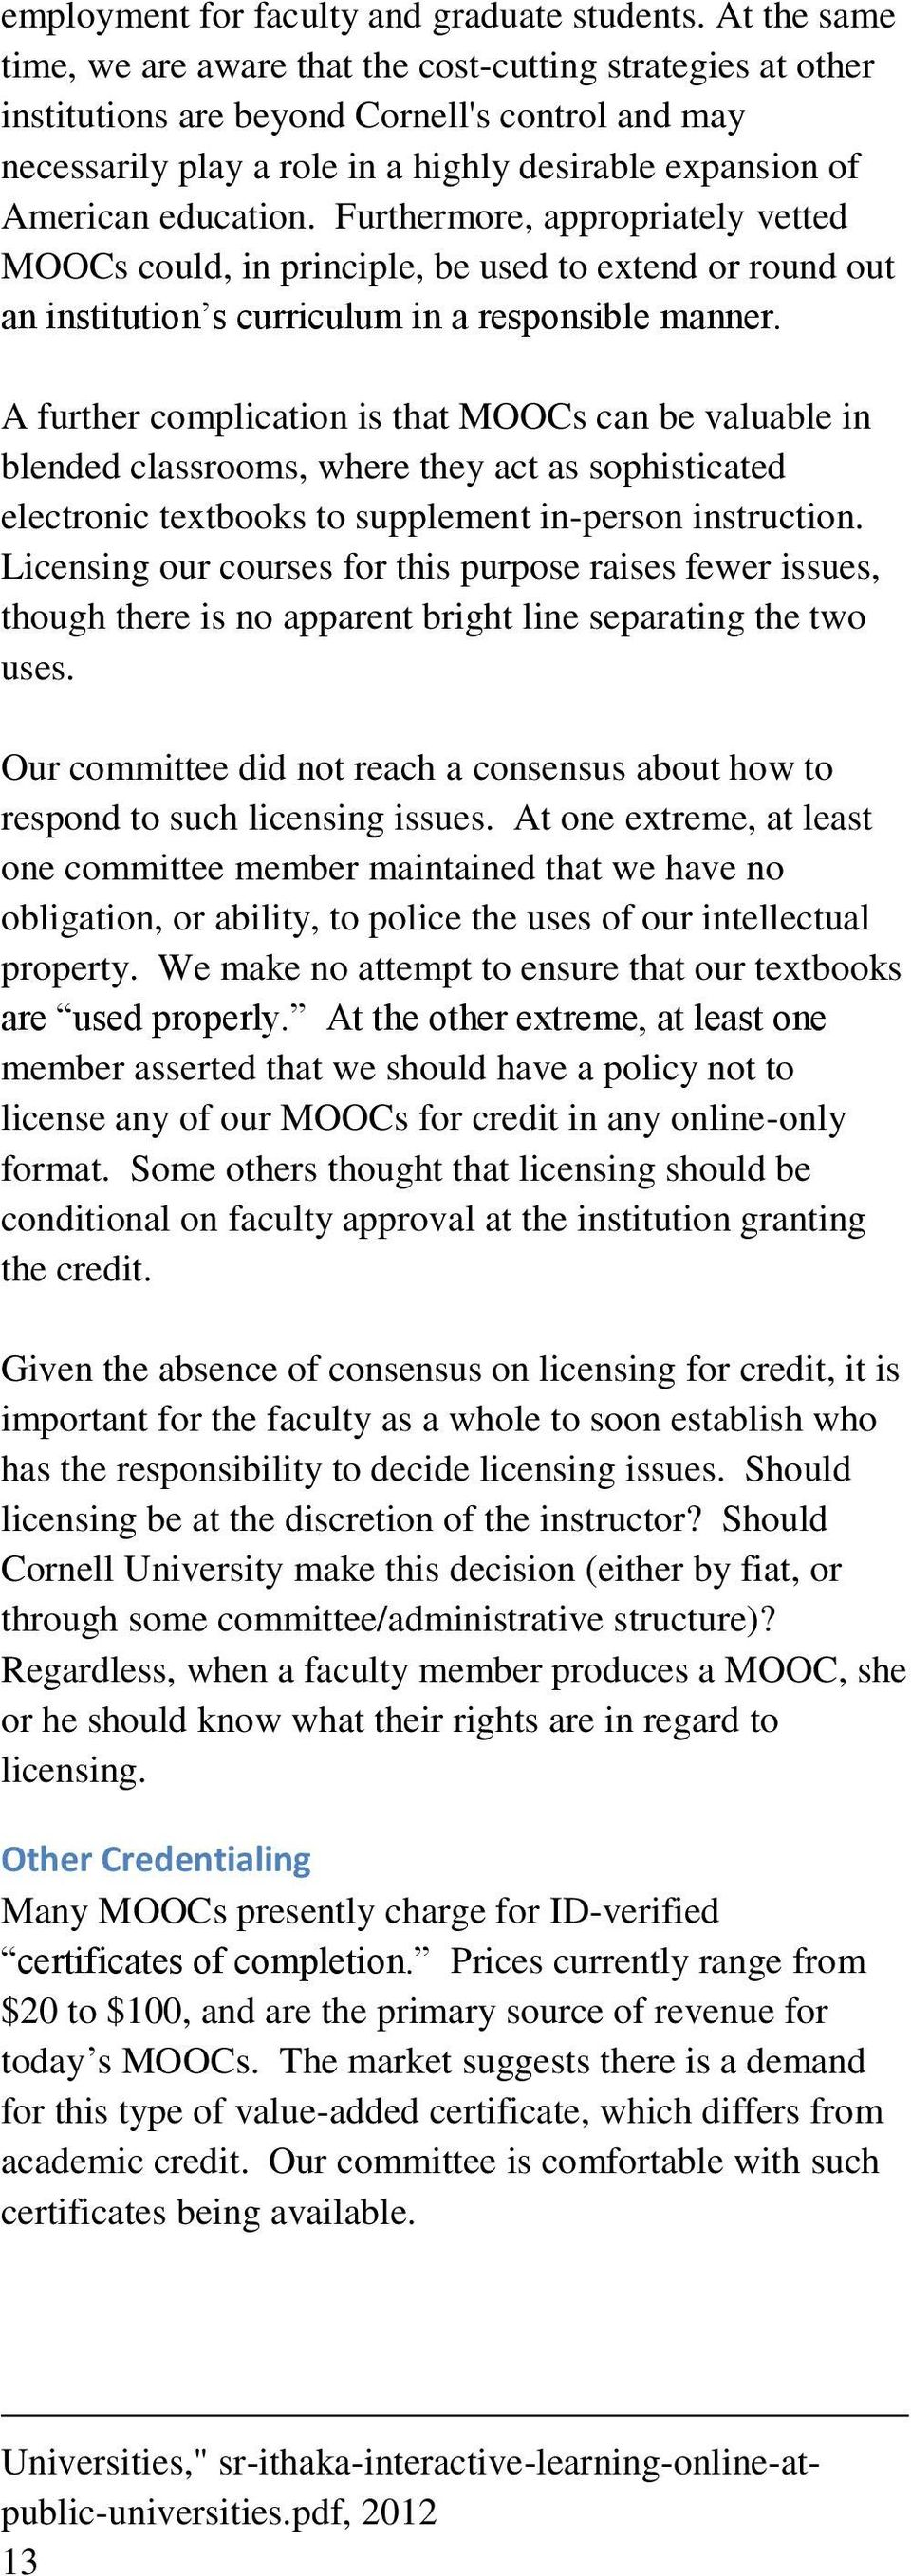 education. Furthermore, appropriately vetted MOOCs could, in principle, be used to extend or round out an institution s curriculum in a responsible manner.